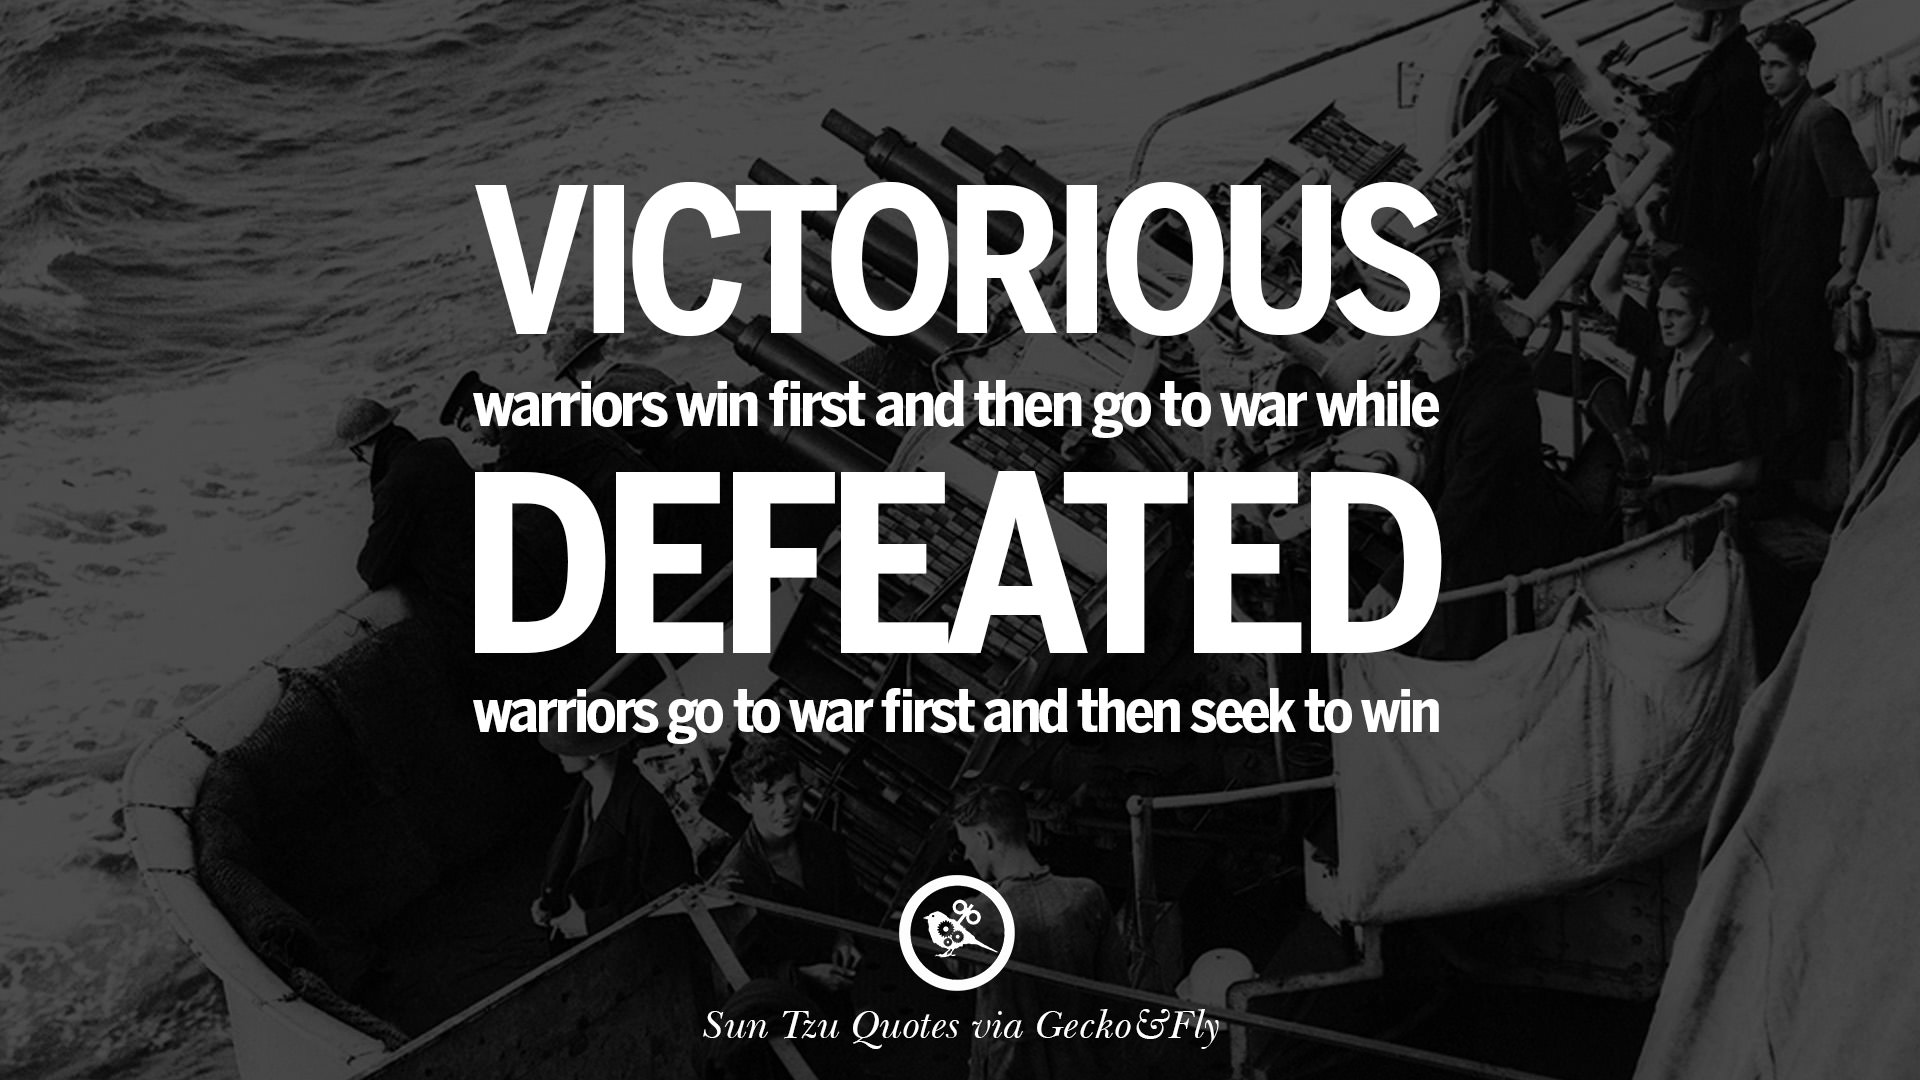 Sun Tzu Art Of War Quotes 18 Quotes from Sun Tzu Art of War for Politics, Business and Sports Sun Tzu Art Of War Quotes